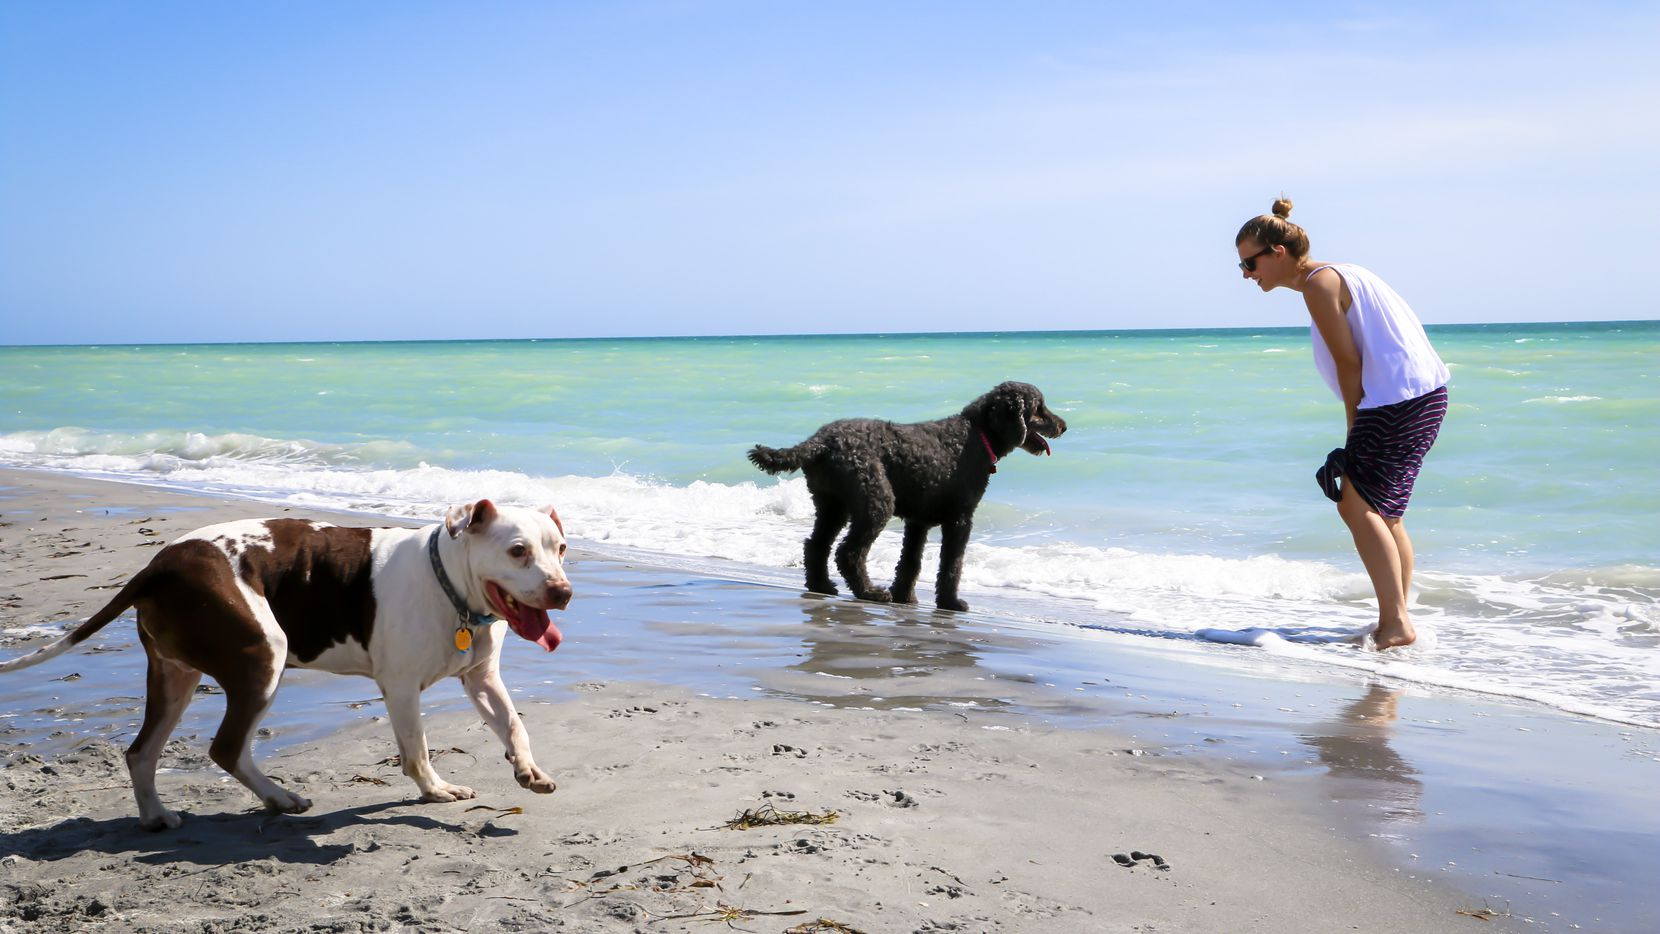 The beaches in and around Venice, Fla., draw plenty of people (and their pets) seeking sun, surf and shark teeth.